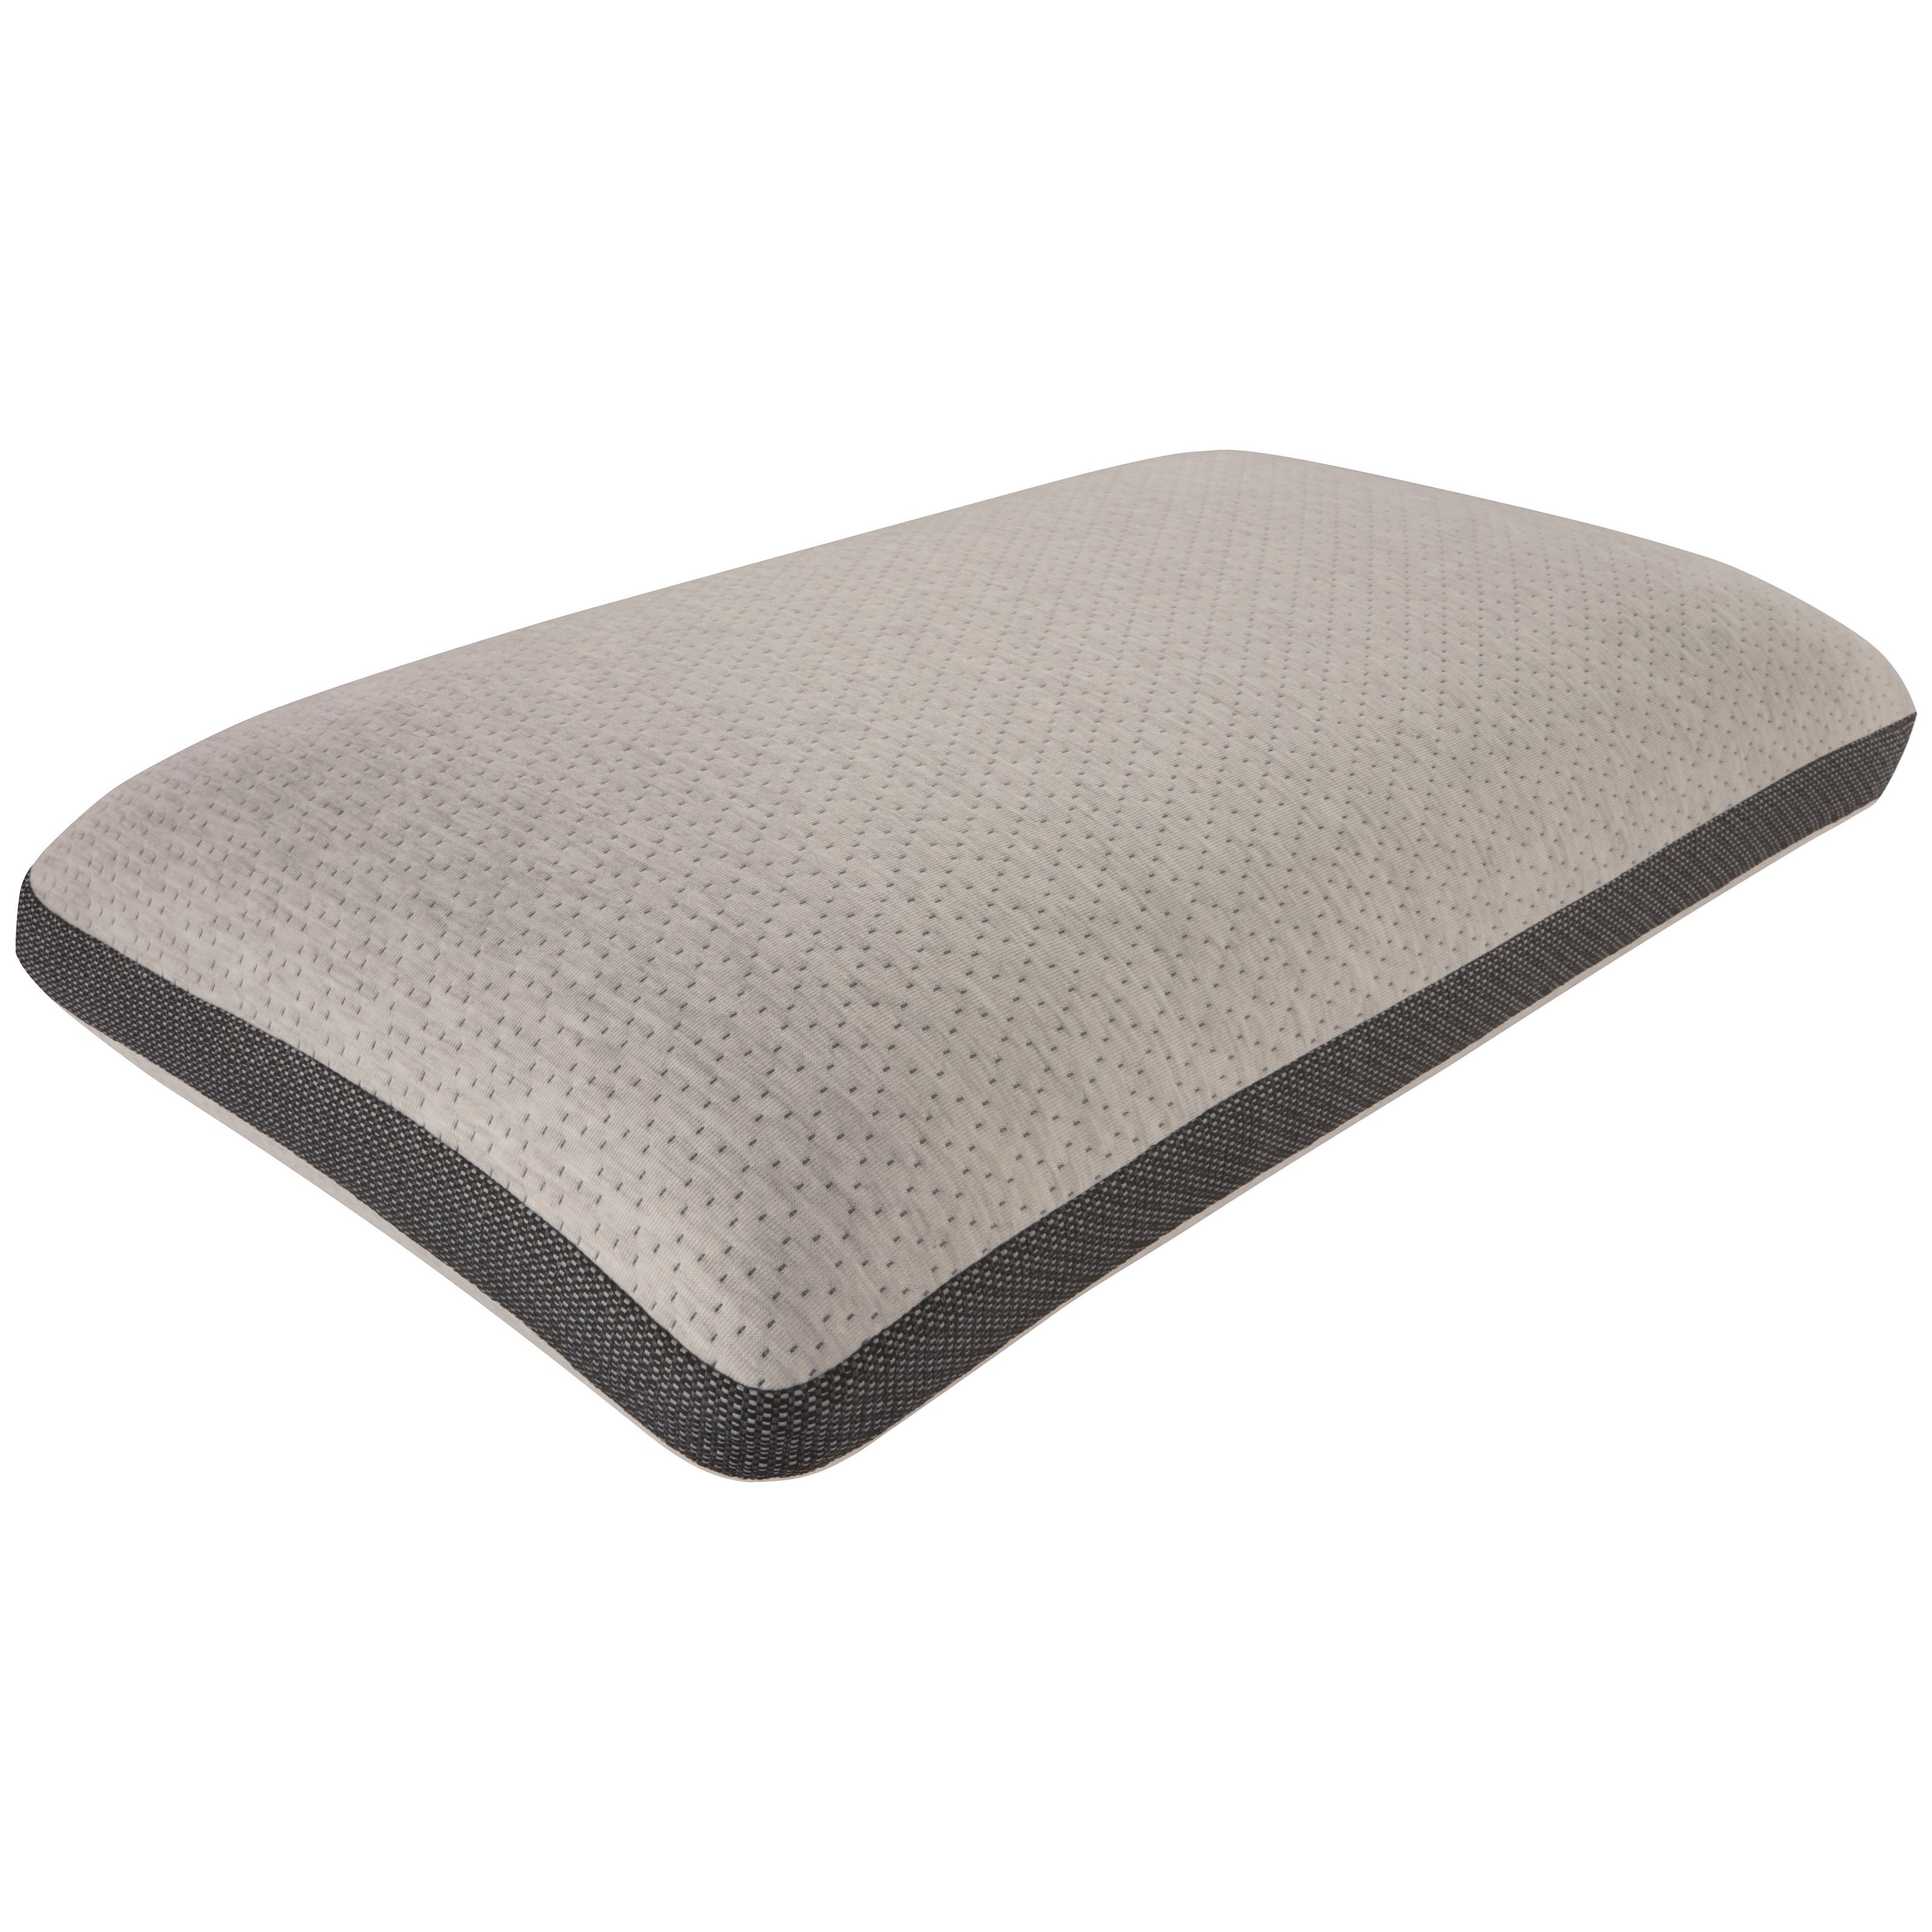 Absolute Relaxation Pillow